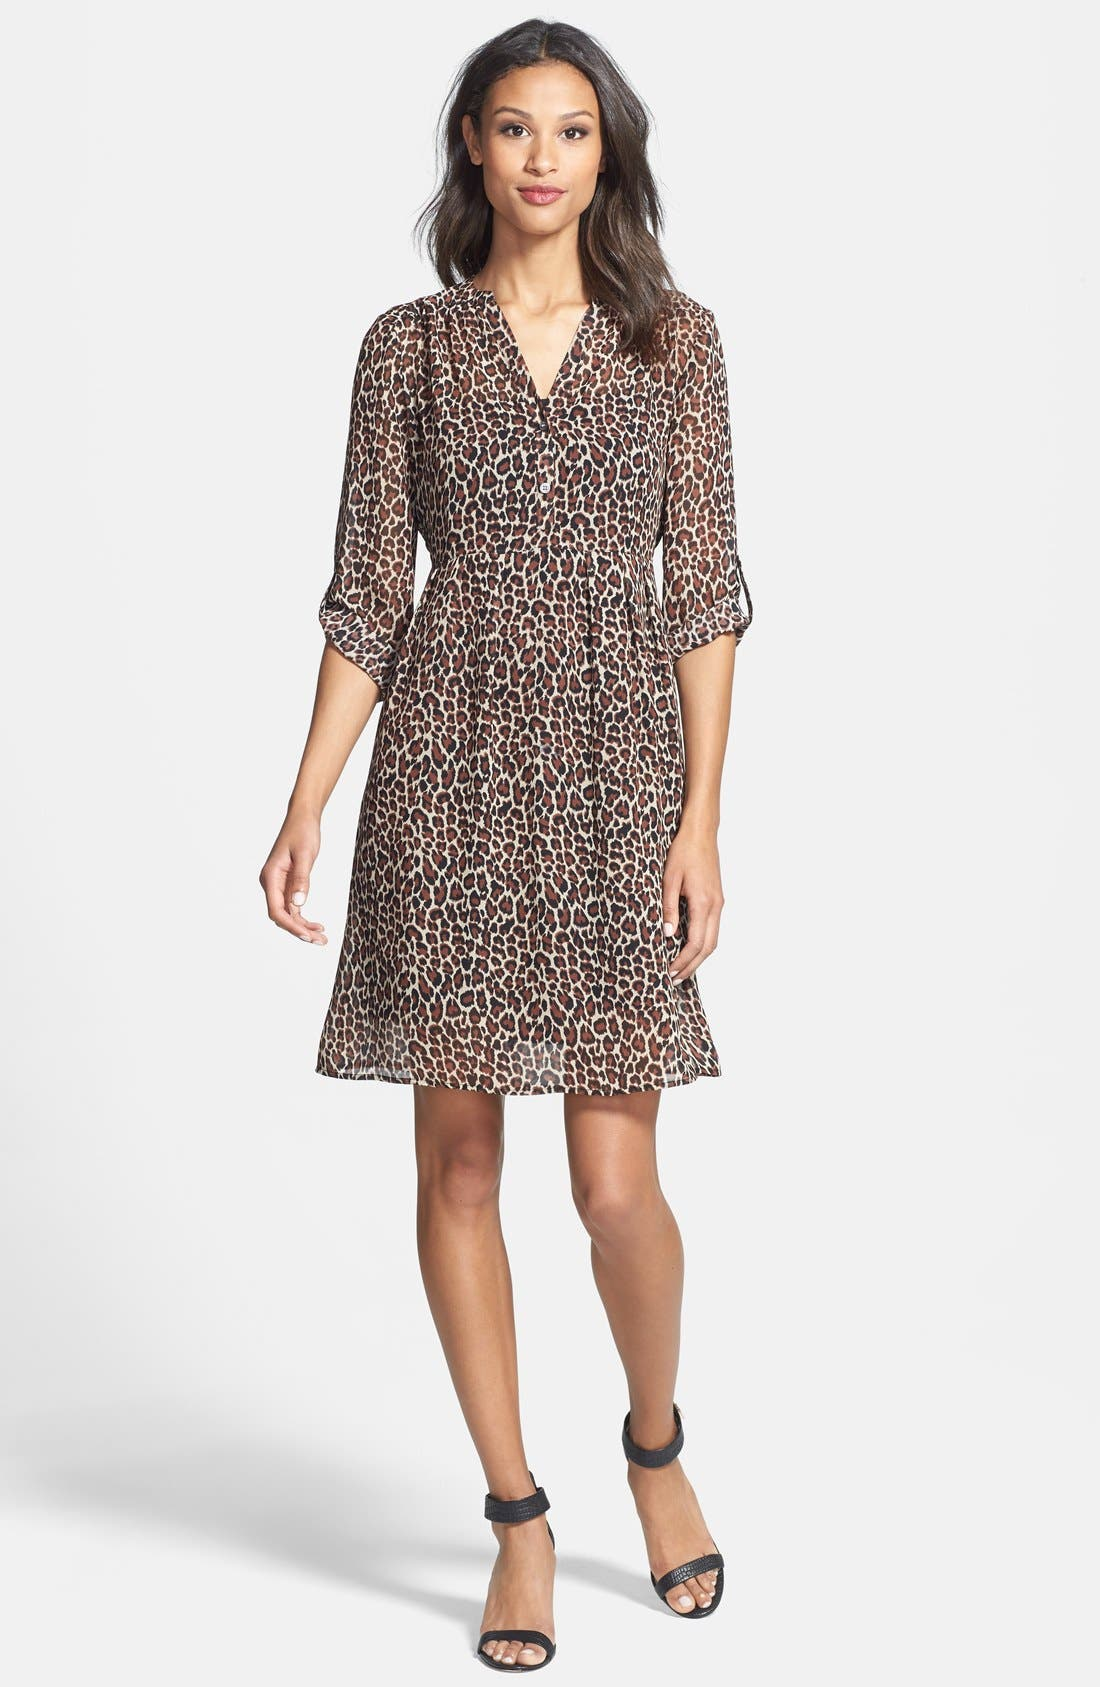 Alternate Image 1 Selected - Two by Vince Camuto Split Neck Leopard Print Shirtdress (Regular & Petite)